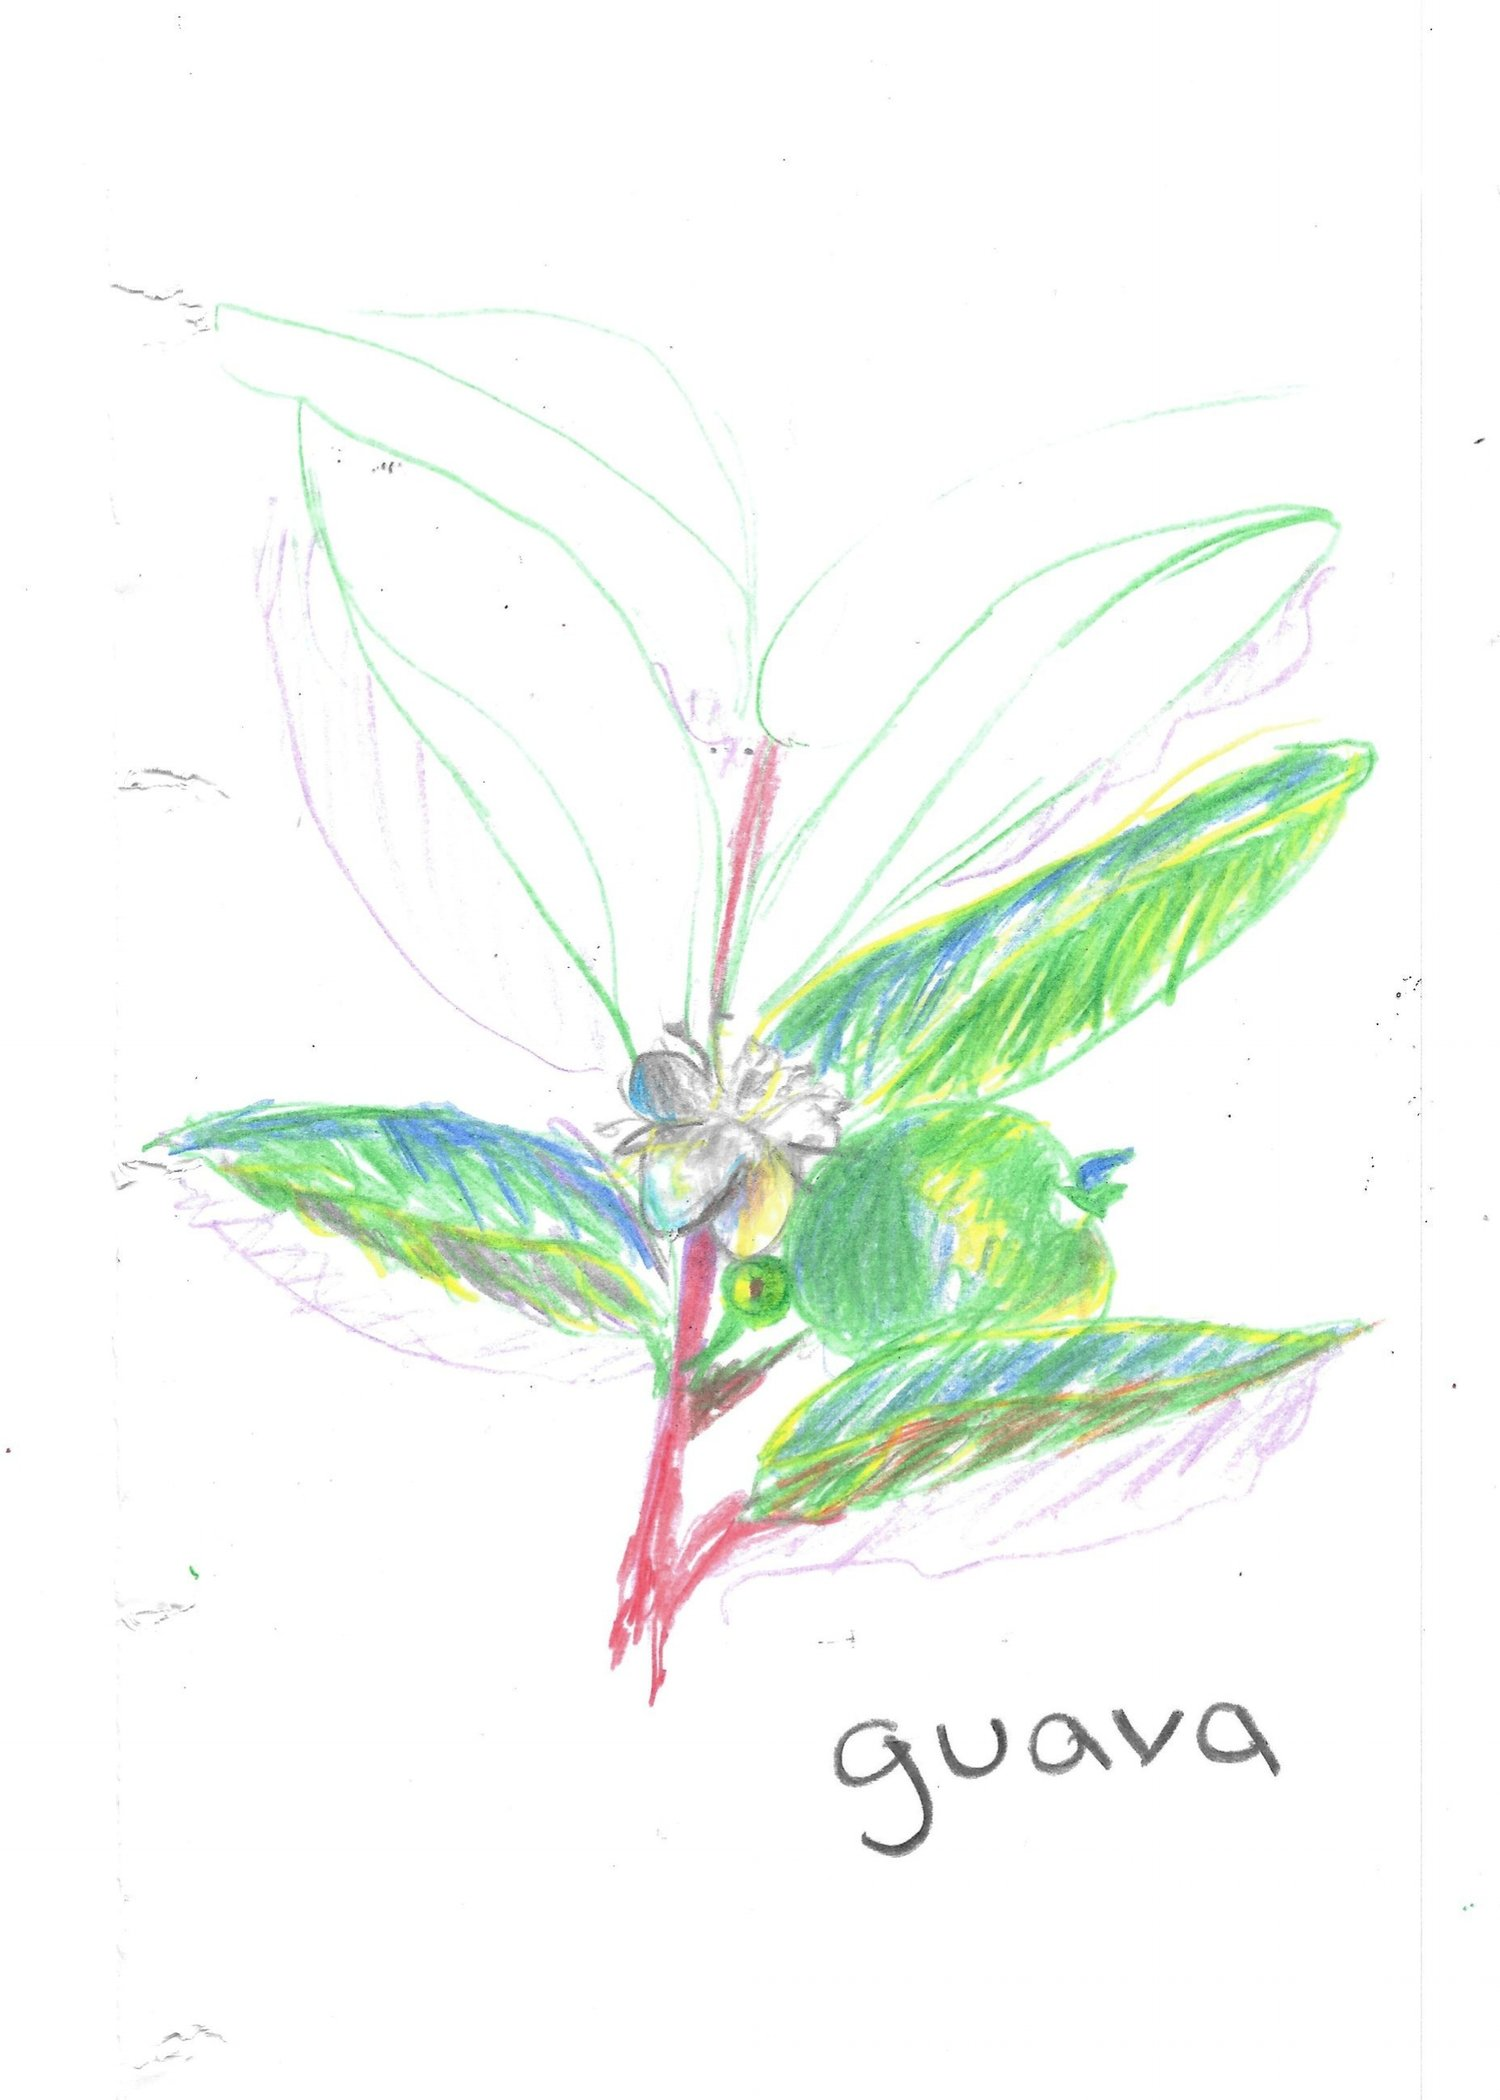 Guava Drawing Images